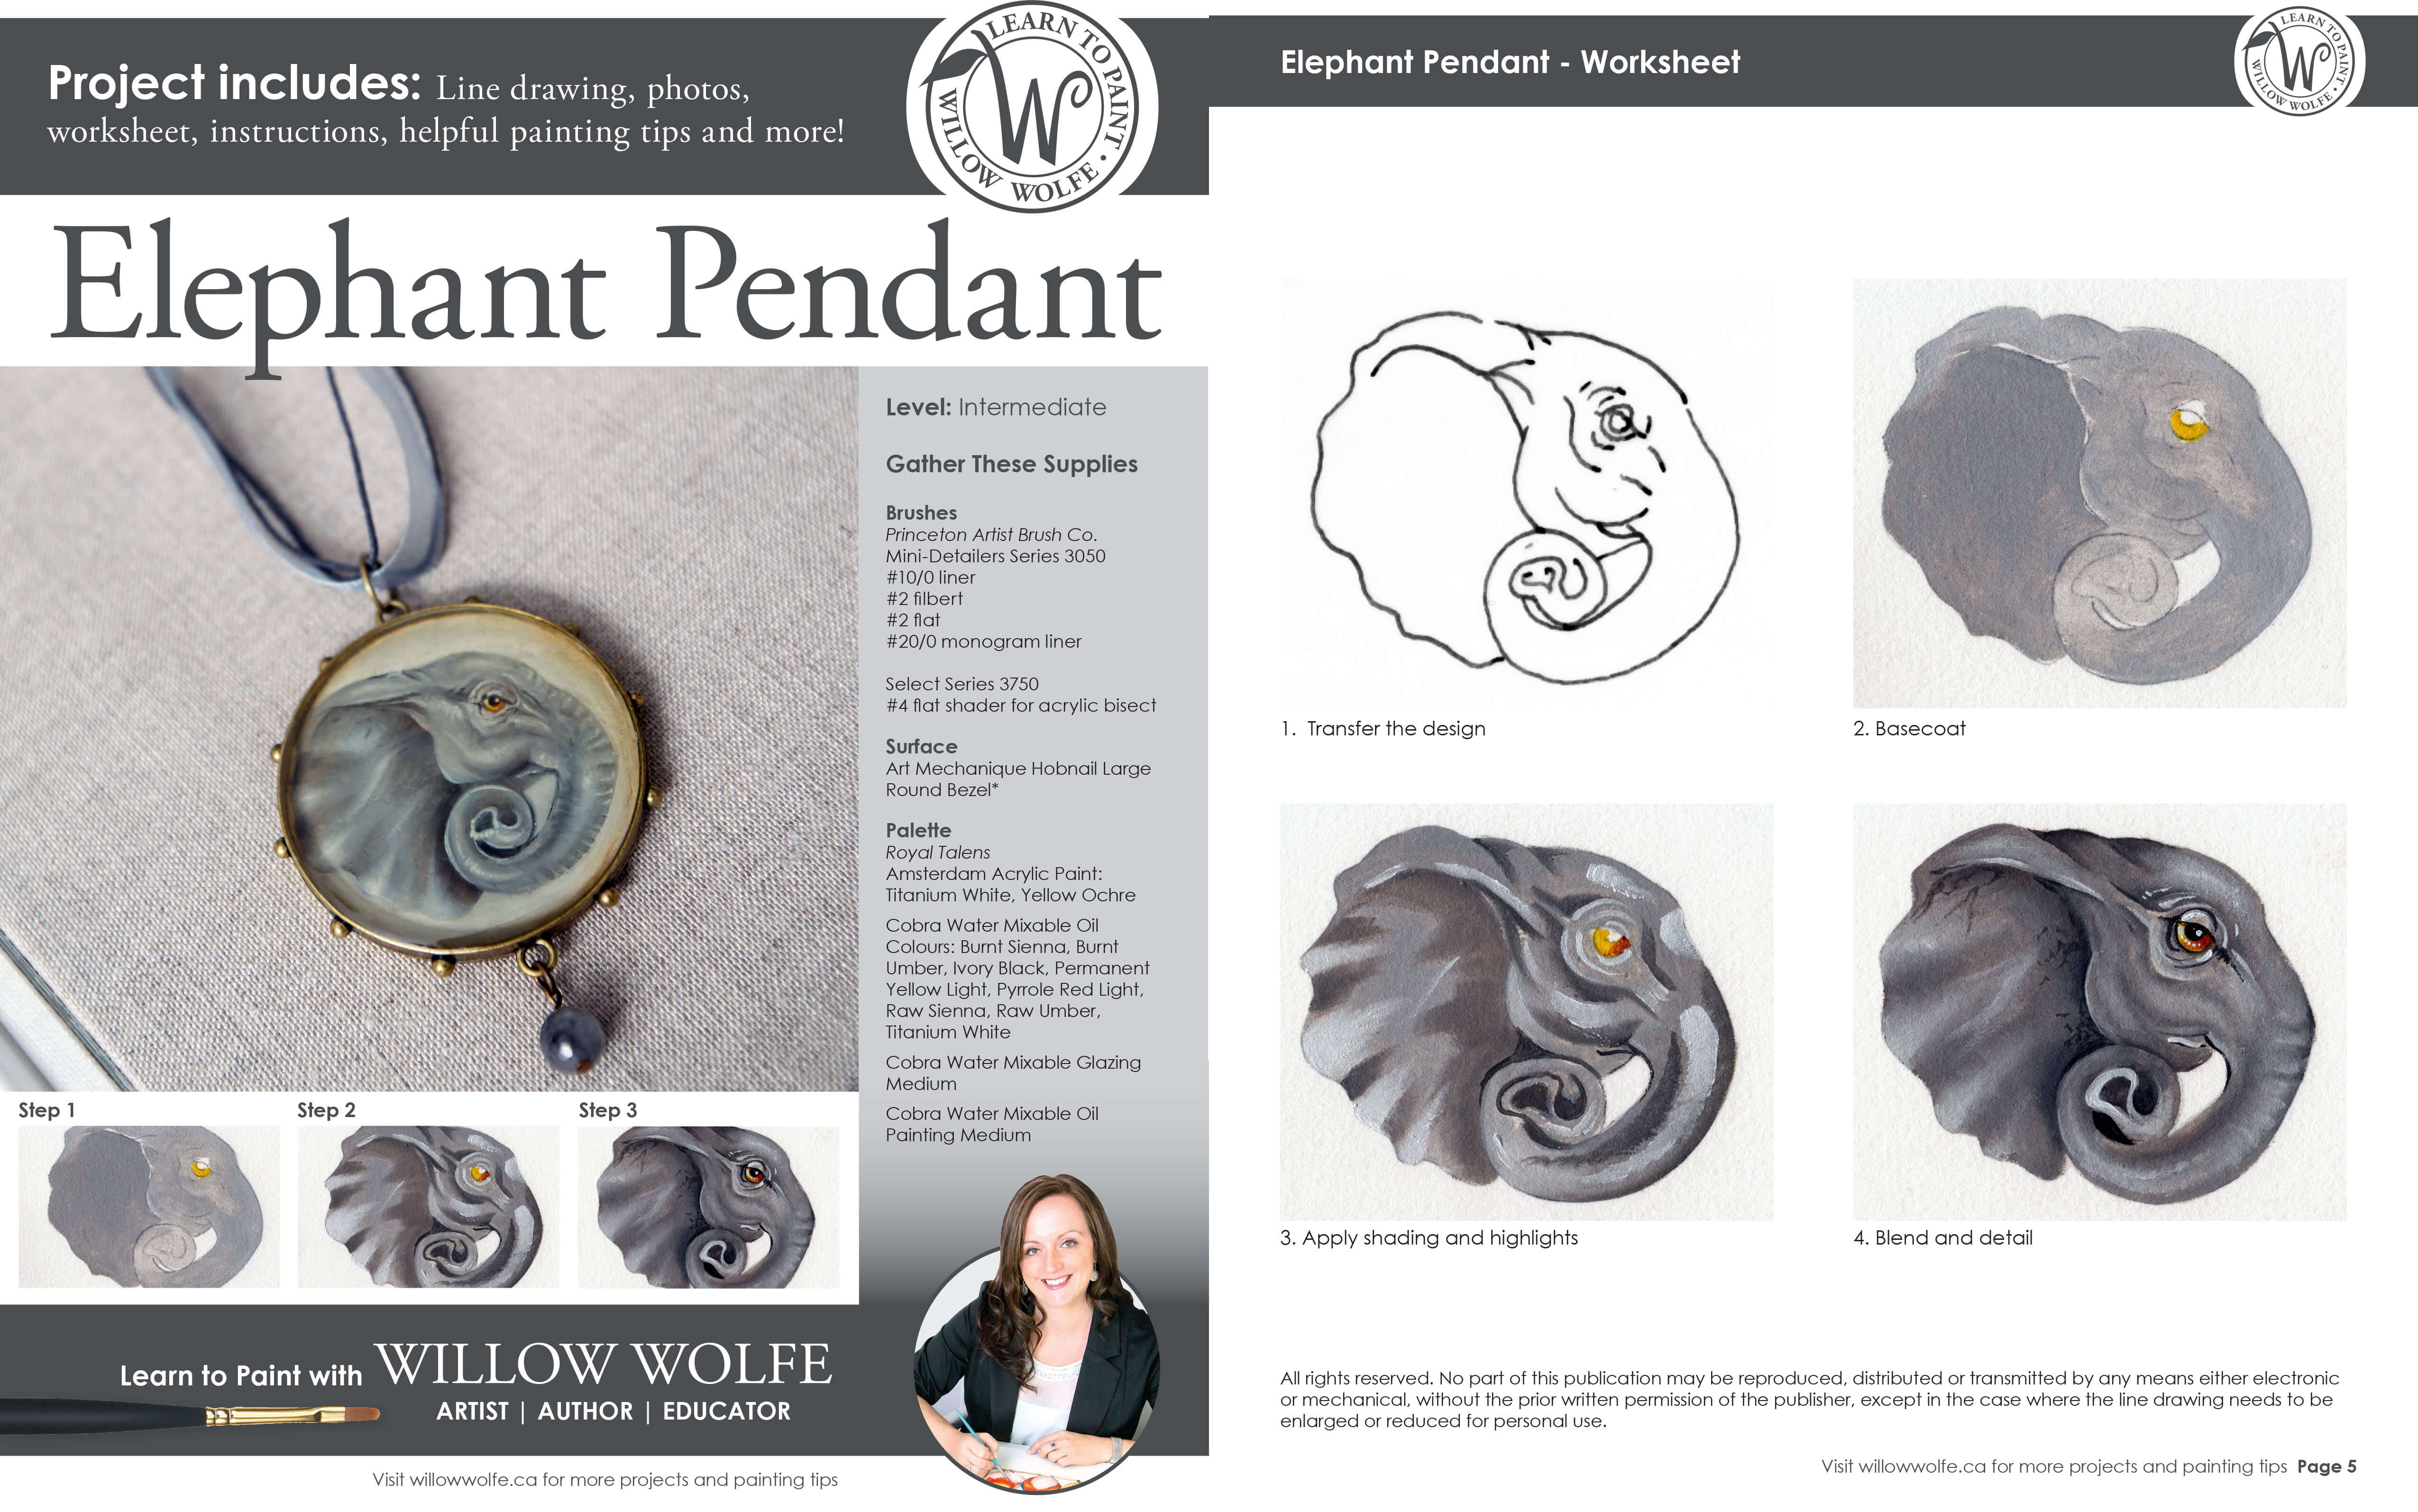 Free Painting Tutorial with Willow Wolfe